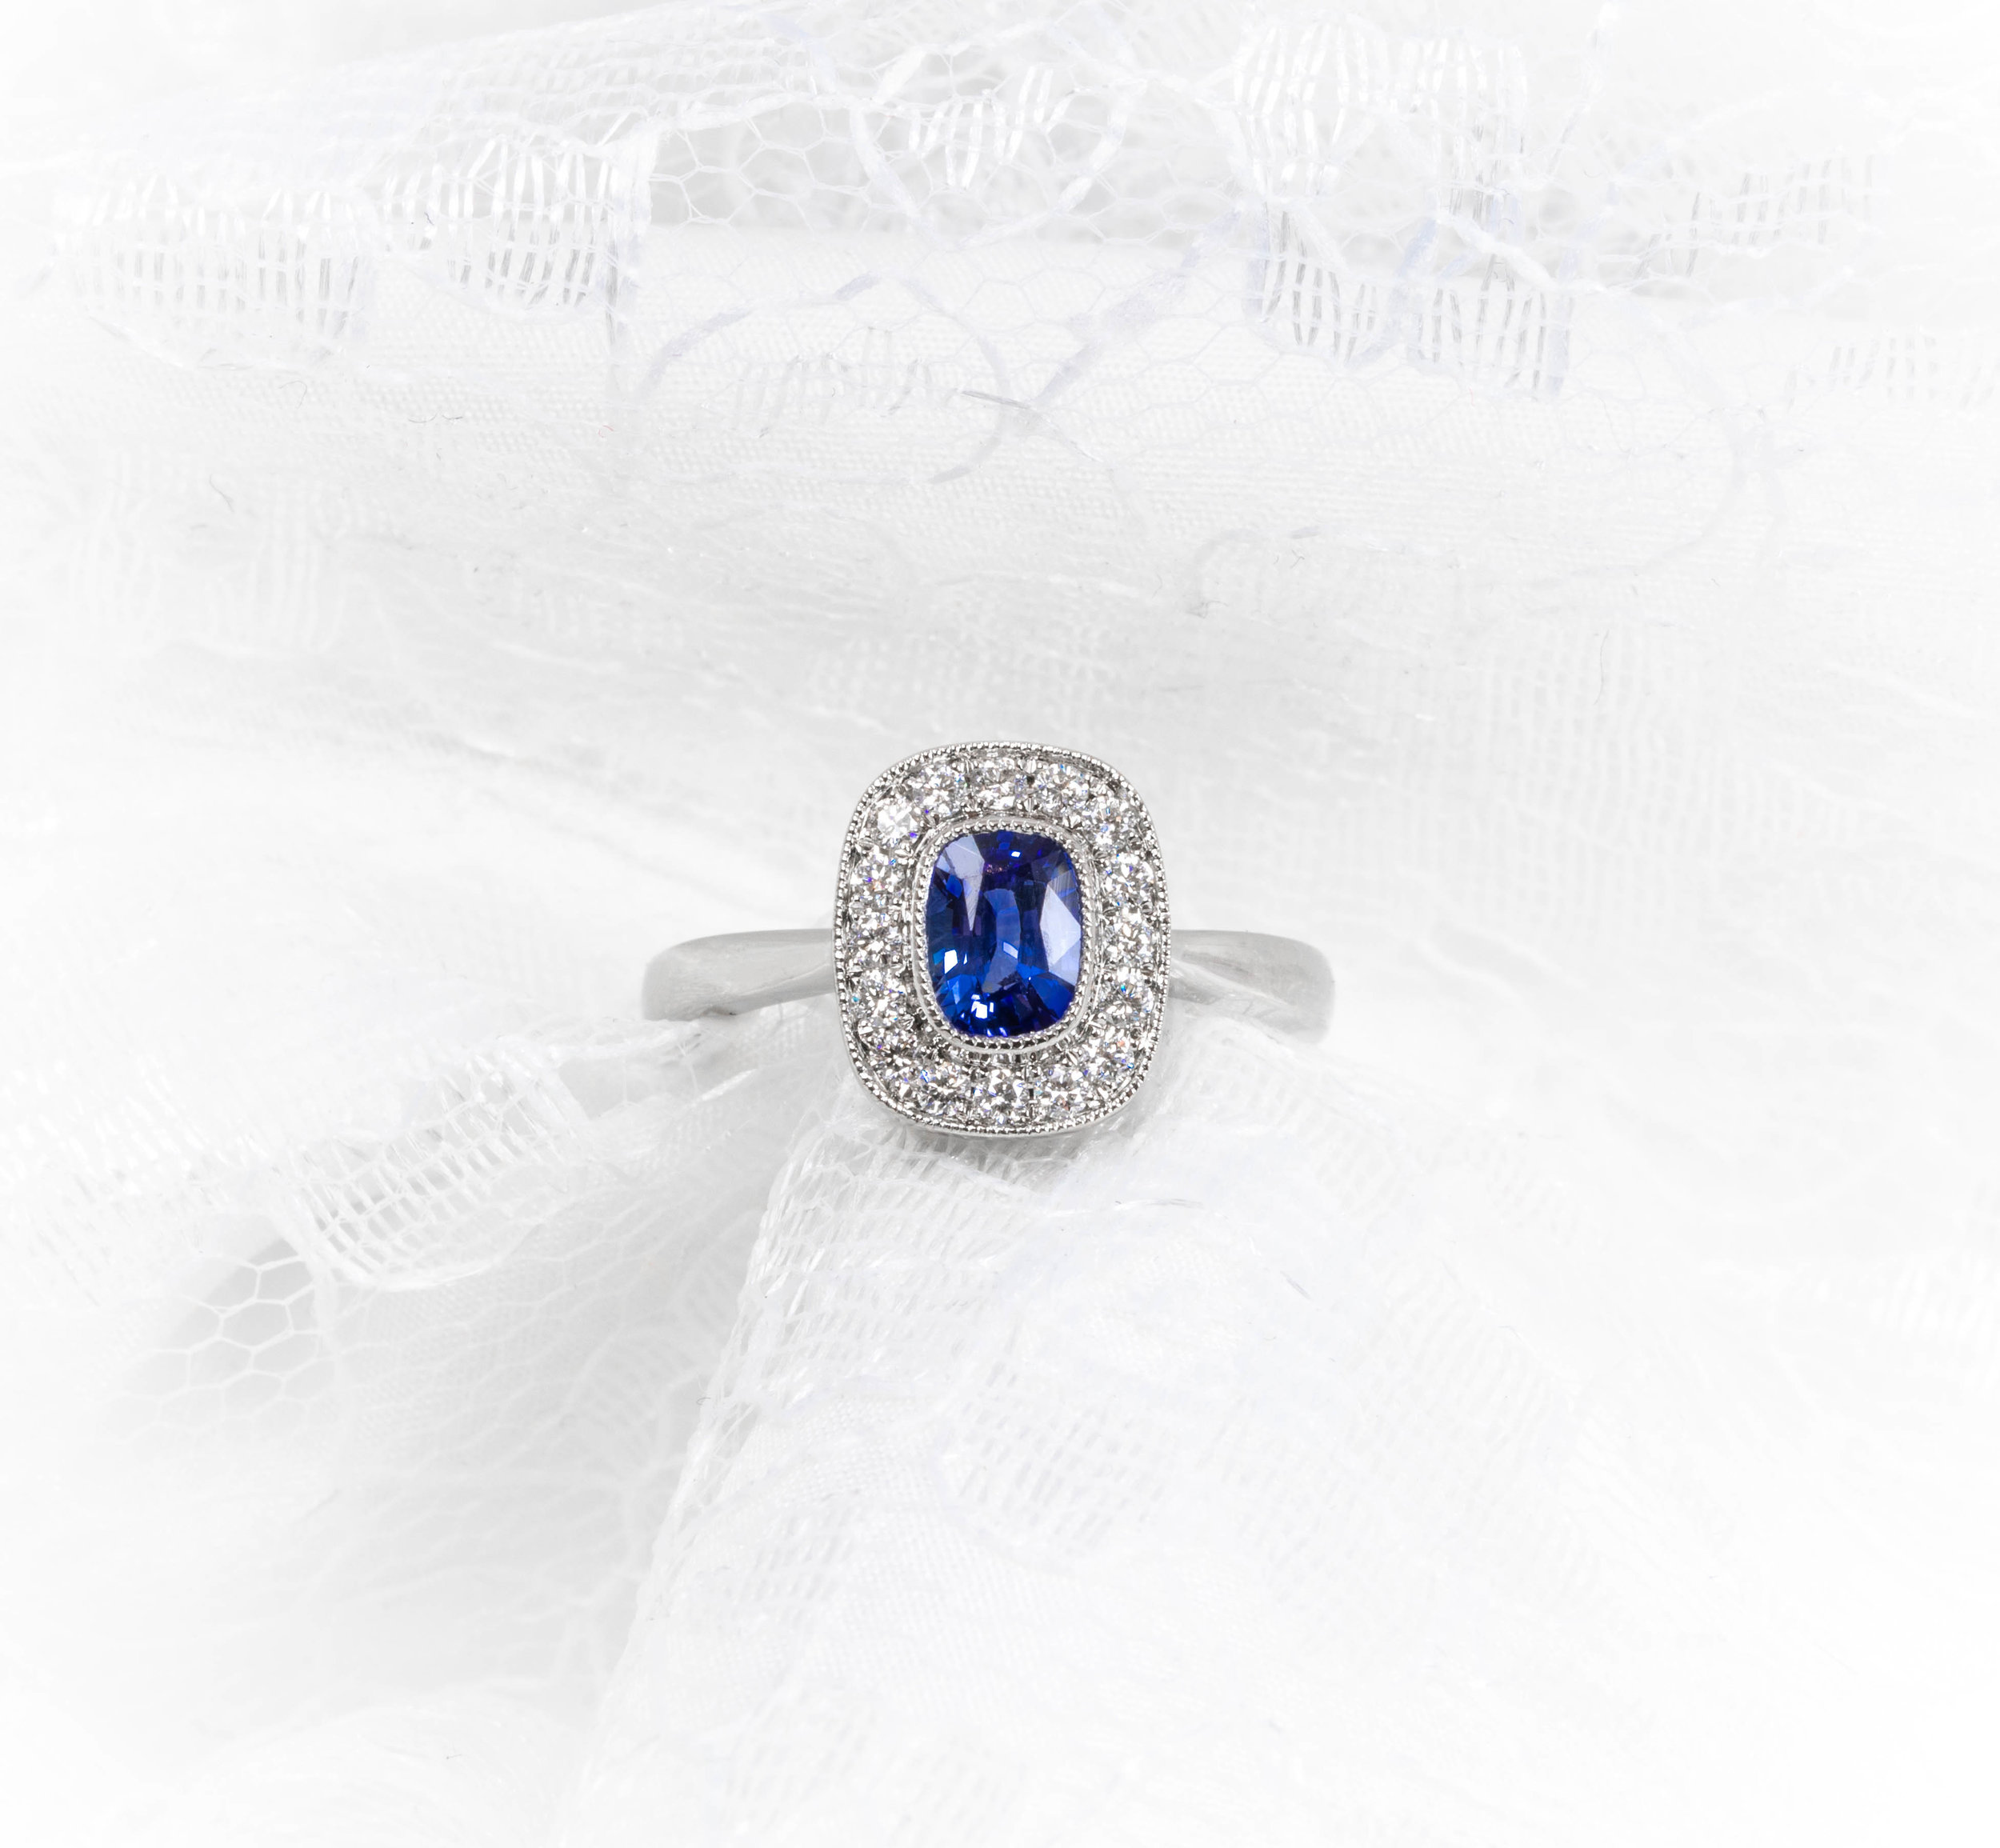 Oblong cushion cut sapphire and diamond platinum cluster ring. Made in Chichester, England.